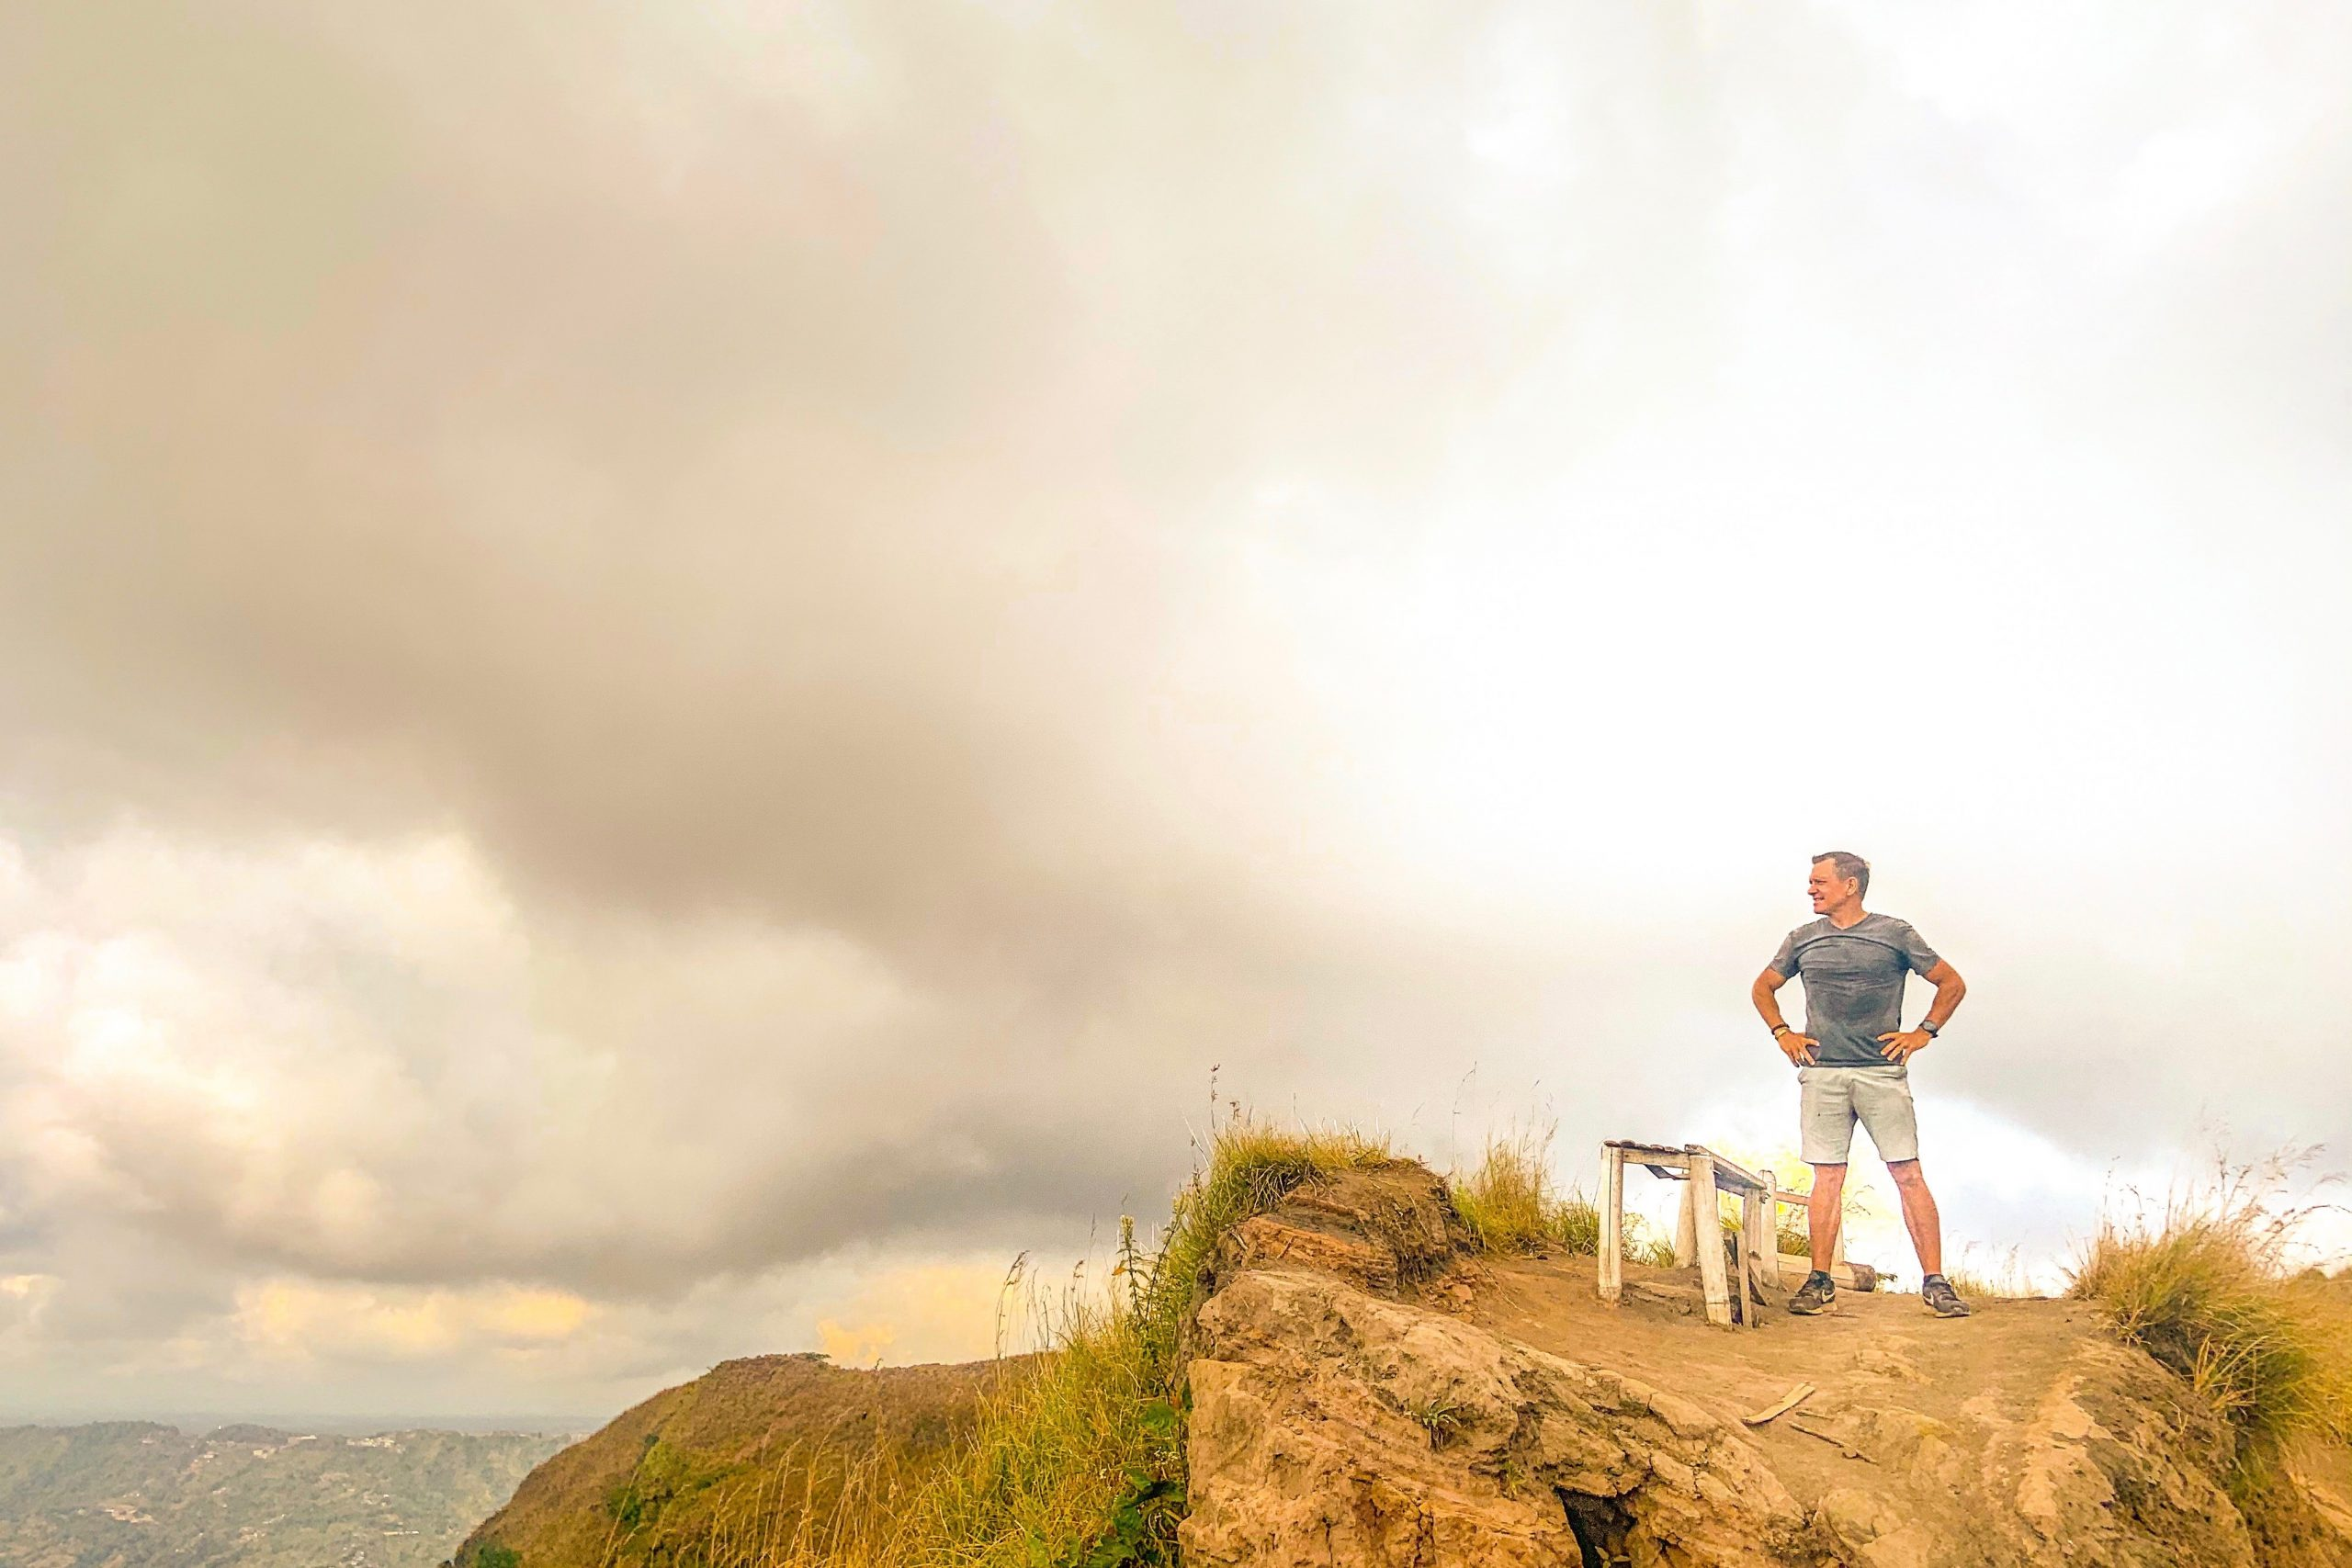 standing on top of the mountain